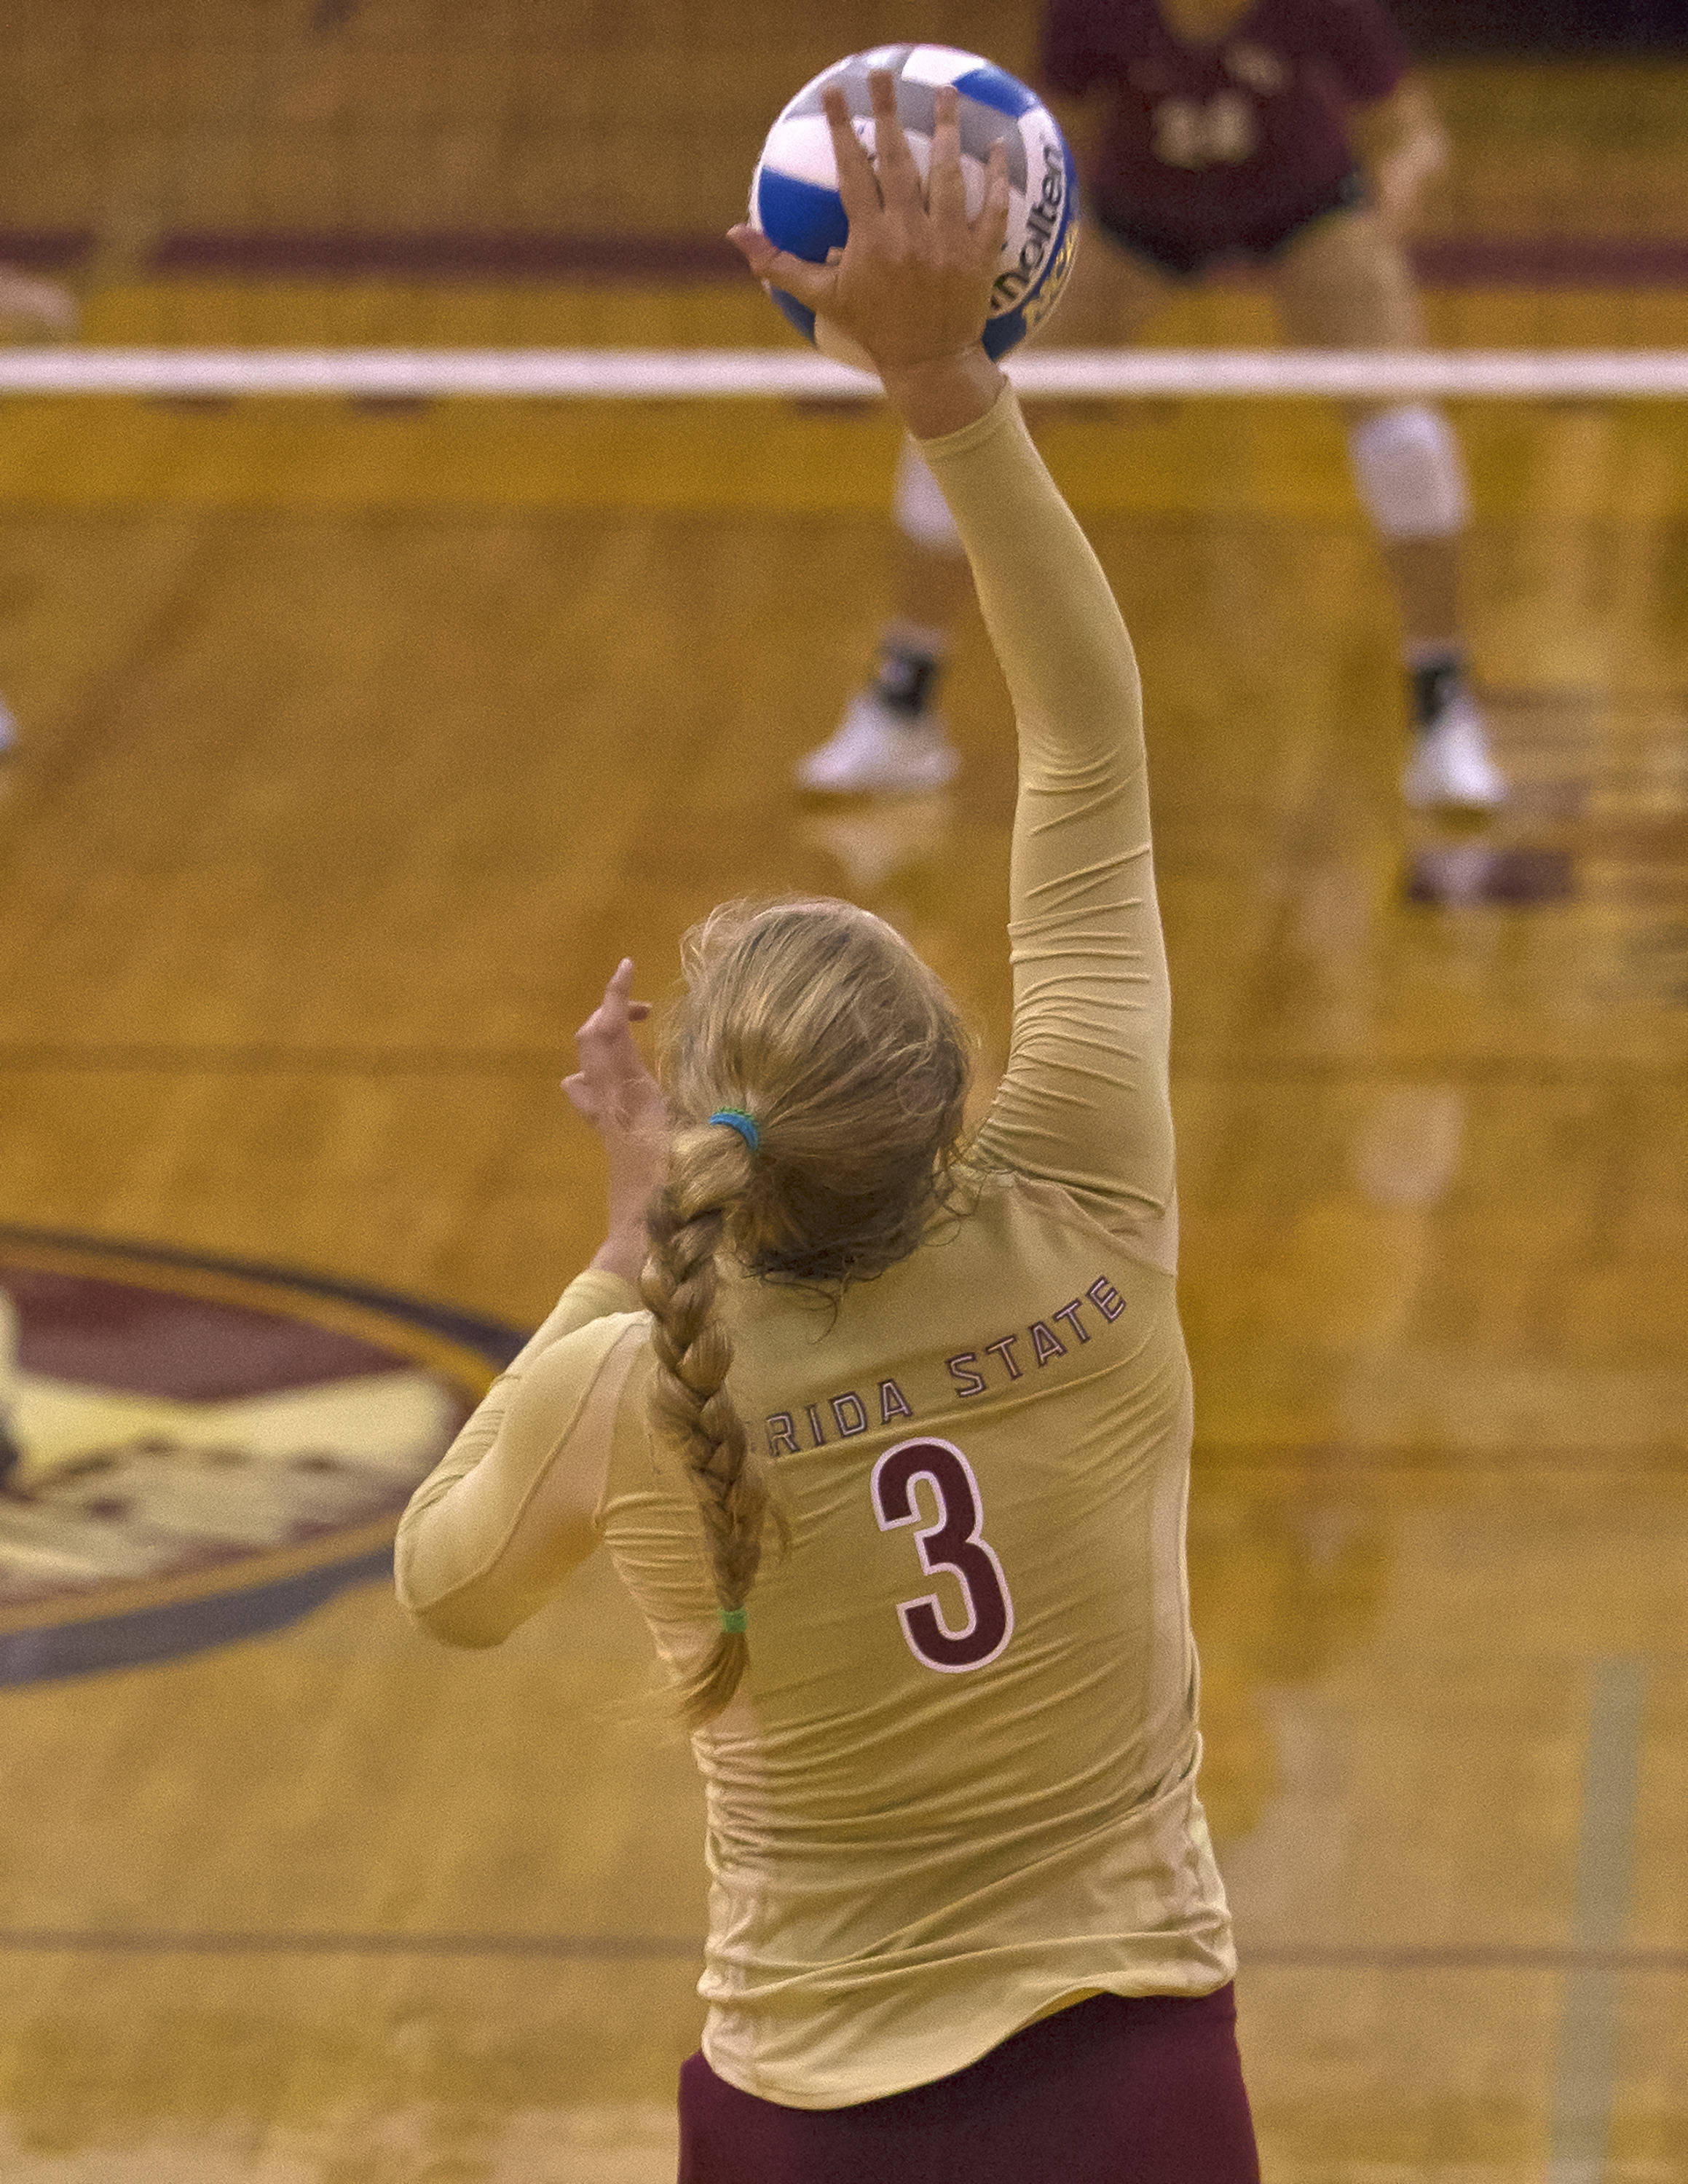 Leah Mikesky, Garnet and Gold, 8-24-13, (Photo by Steve Musco)